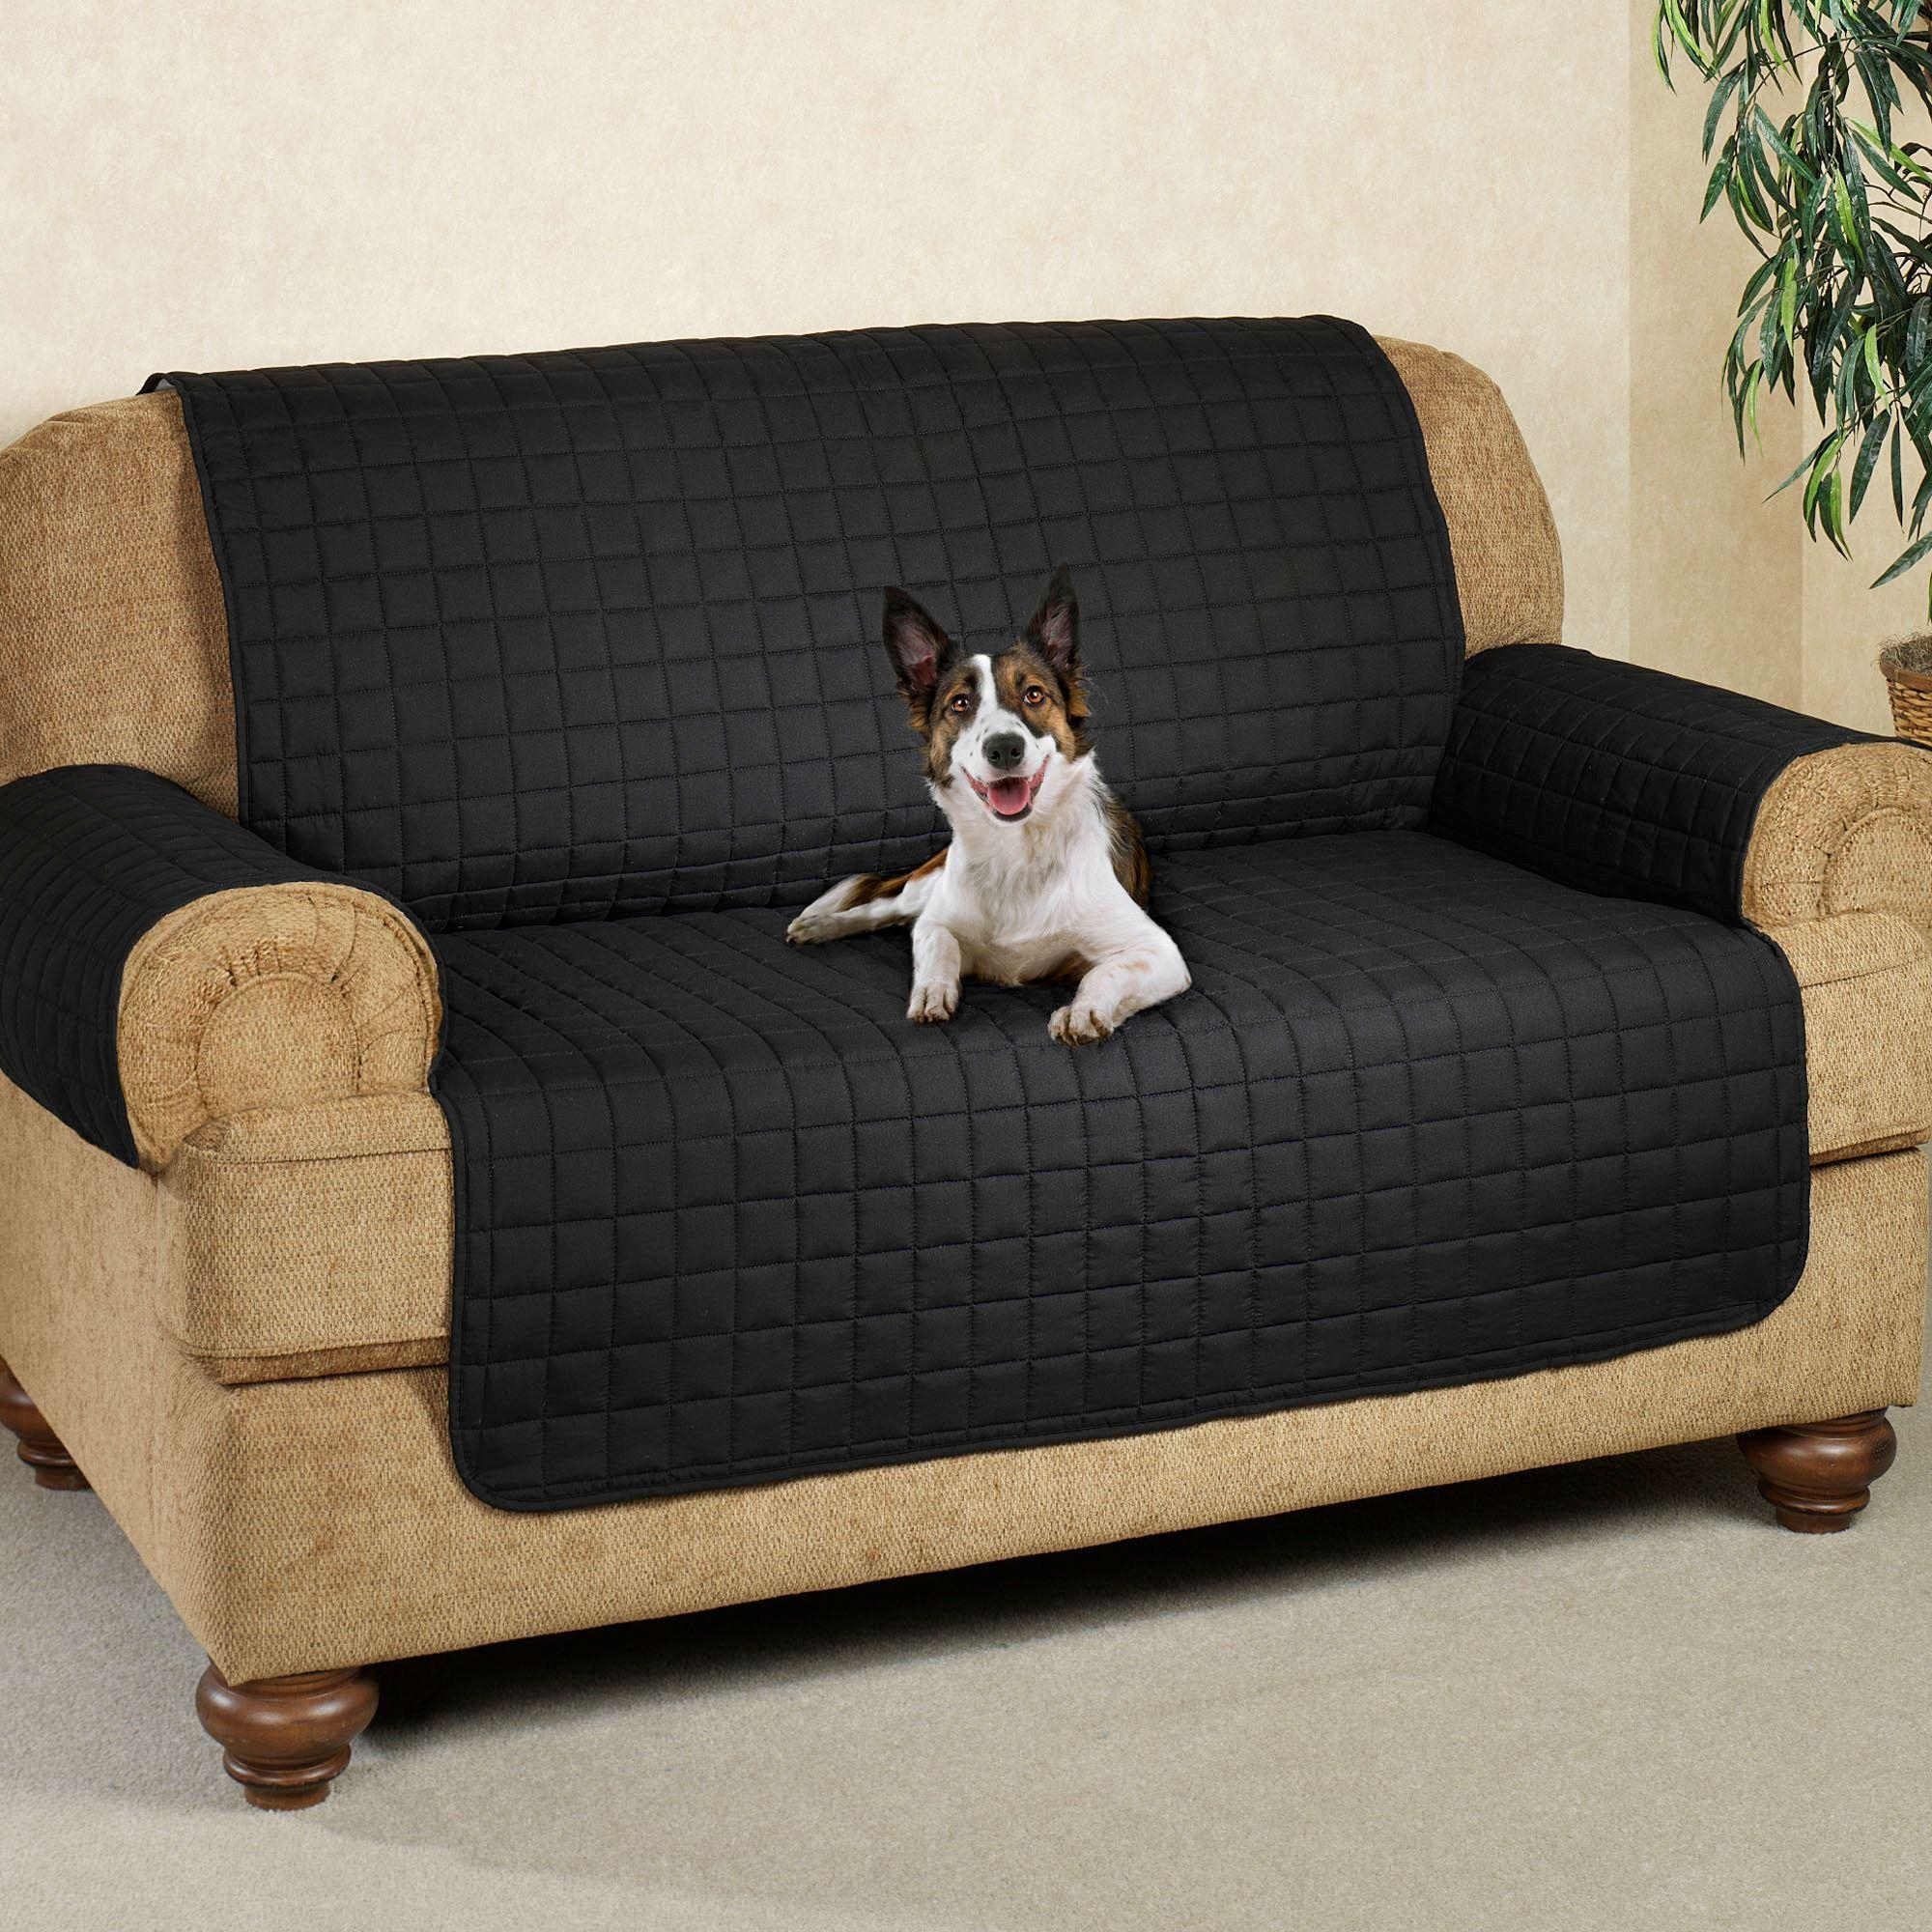 Microfiber Pet Furniture Covers With Tuck In Flaps Intended For Pet Proof Sofa Covers (Image 6 of 20)